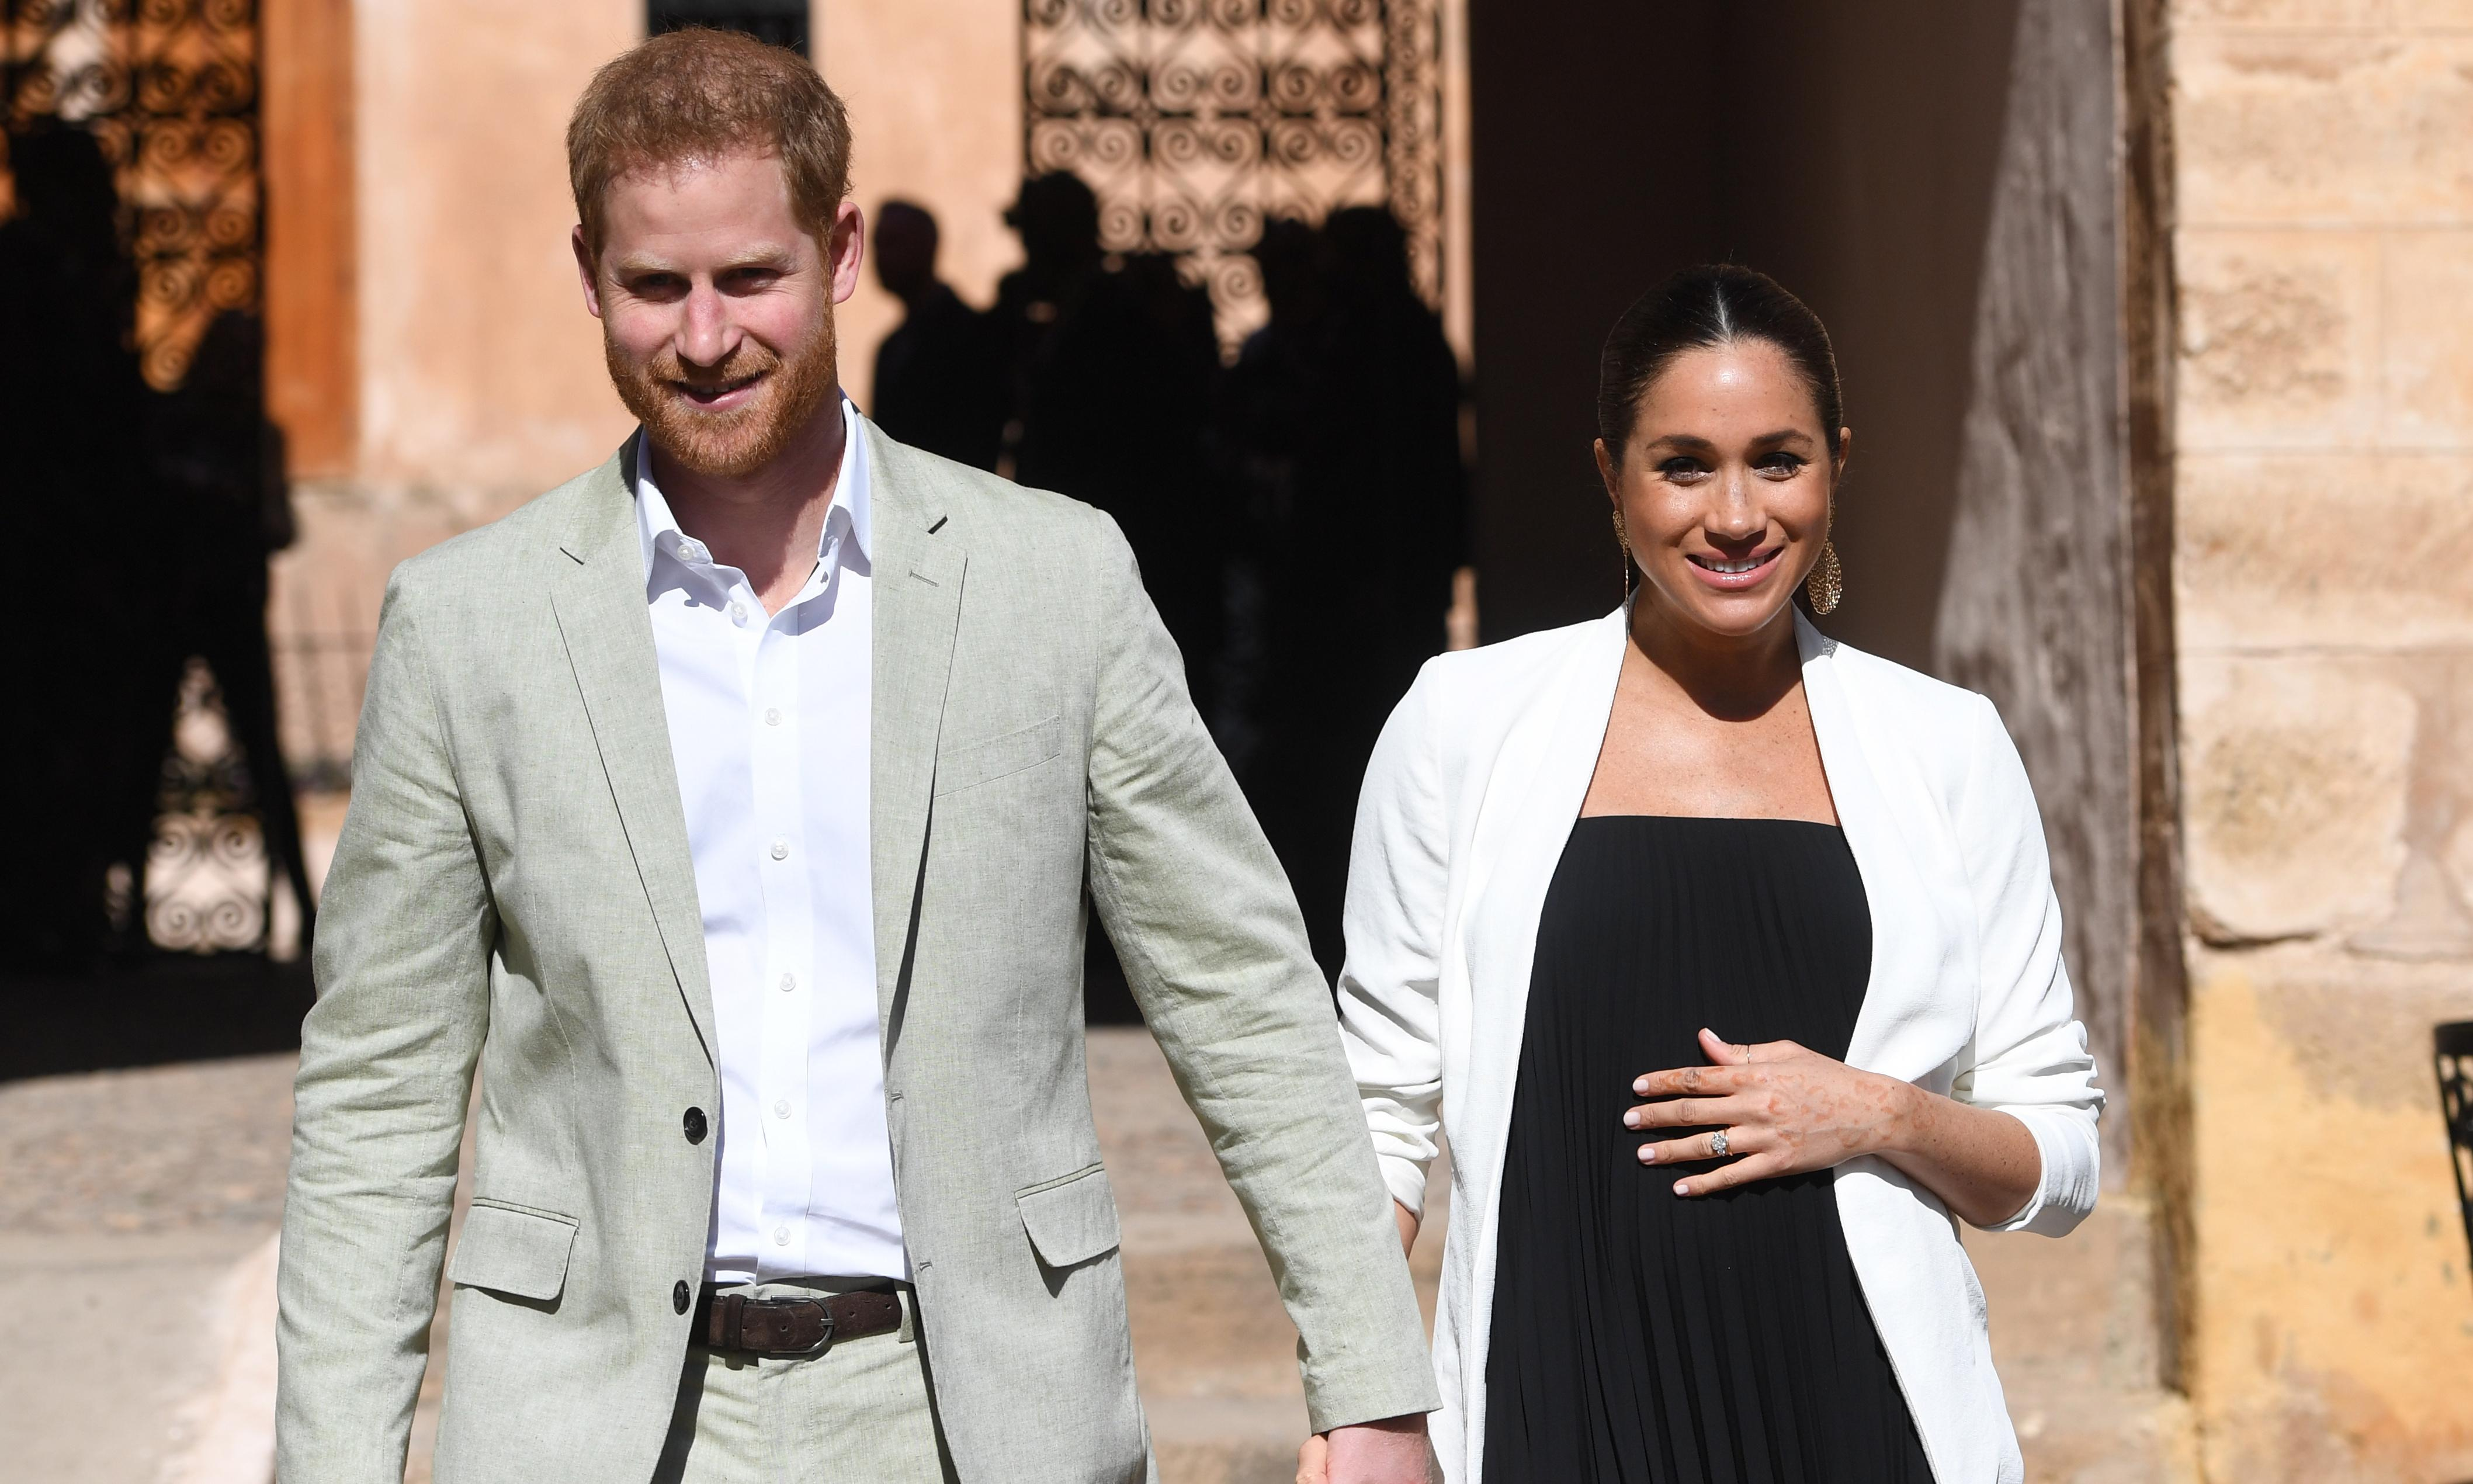 Royal baby: Meghan, Duchess of Sussex, gives birth to boy